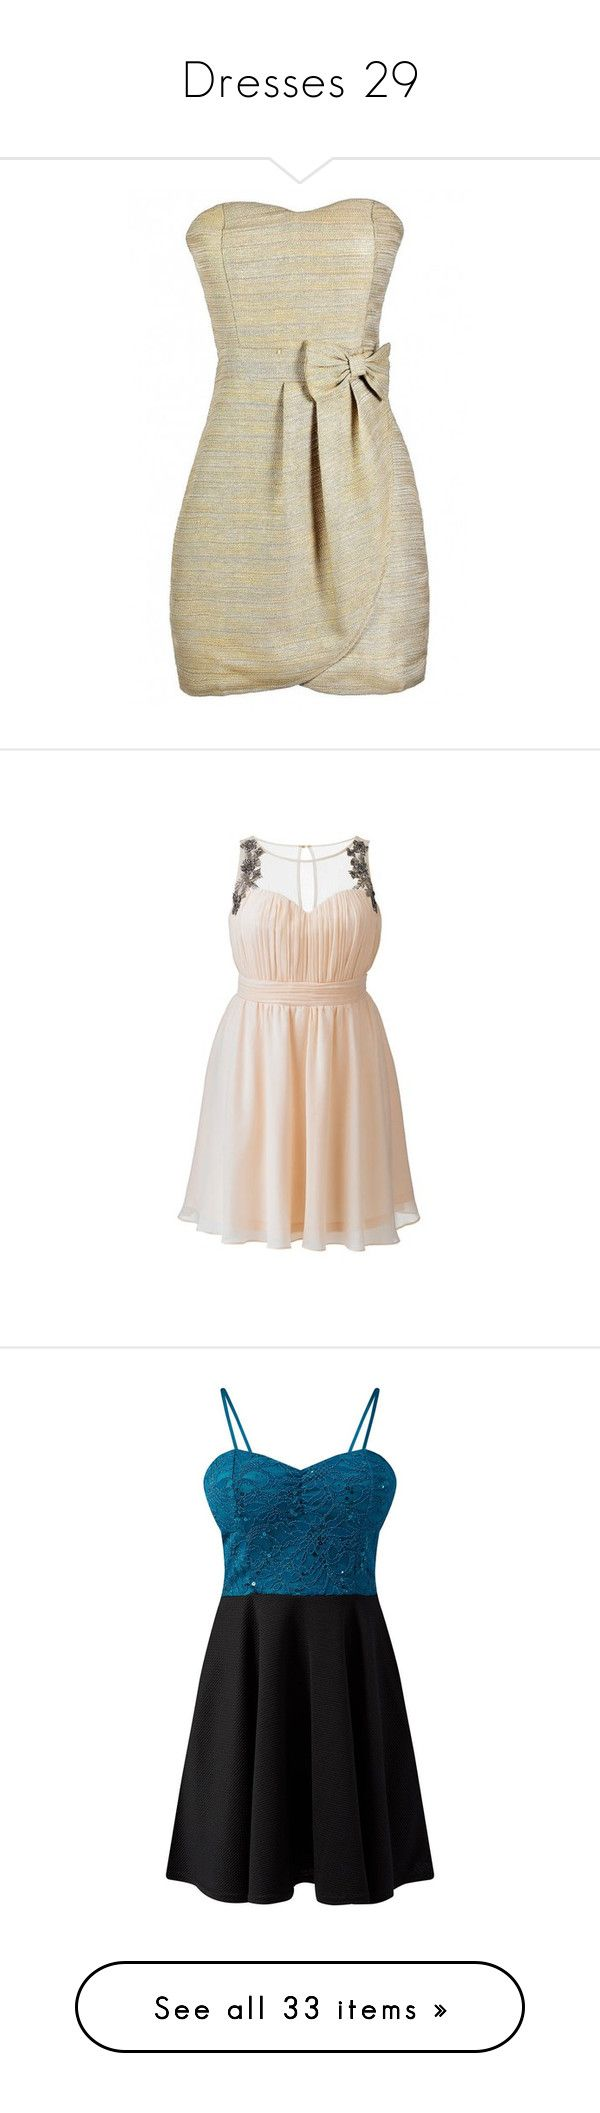 """""""Dresses 29"""" by katmccreery on Polyvore featuring dresses, strapless dresses, brown cocktail dress, gold sparkly dress, gold cocktail dress, sweetheart neckline dress, chiffon cocktail dresses, prom dresses, pink chiffon dress and pink cocktail dress"""